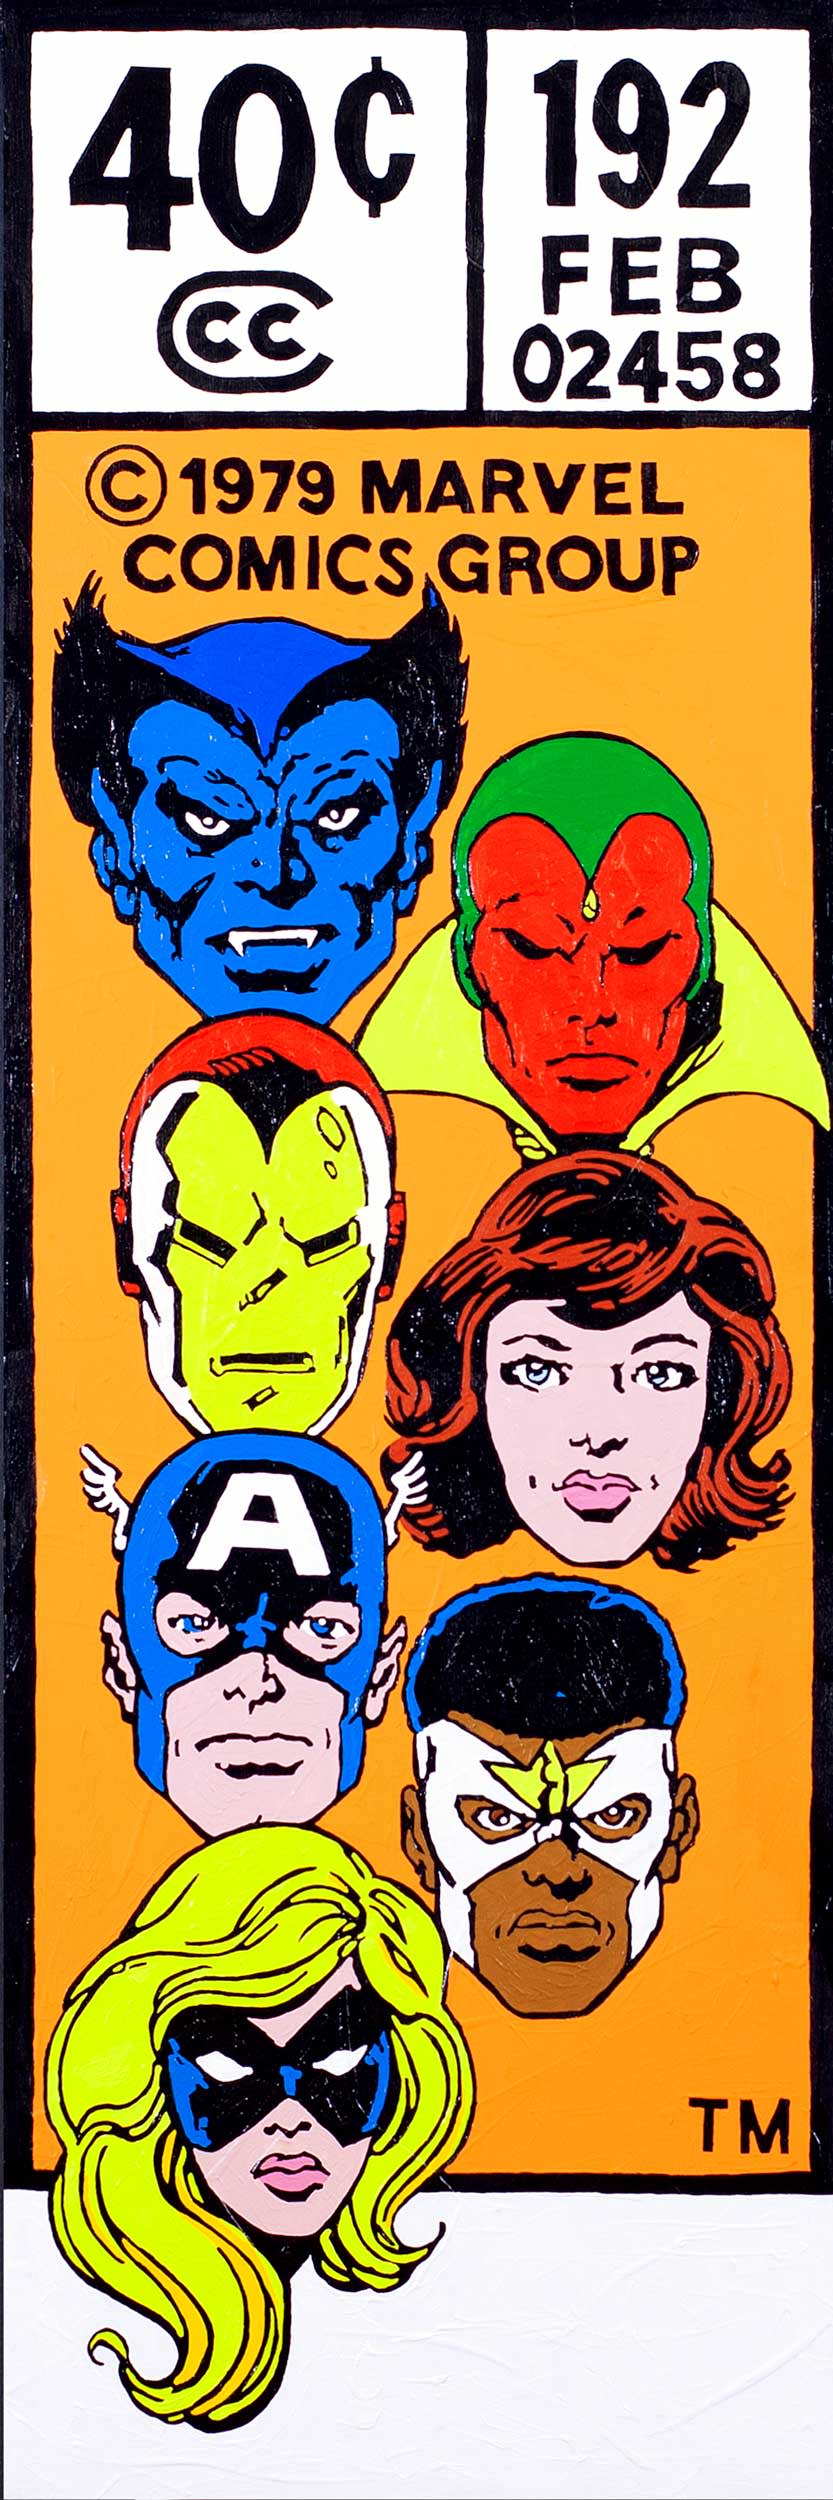 Avengers192 12x36 toddmonk 2020 lo h9vz77